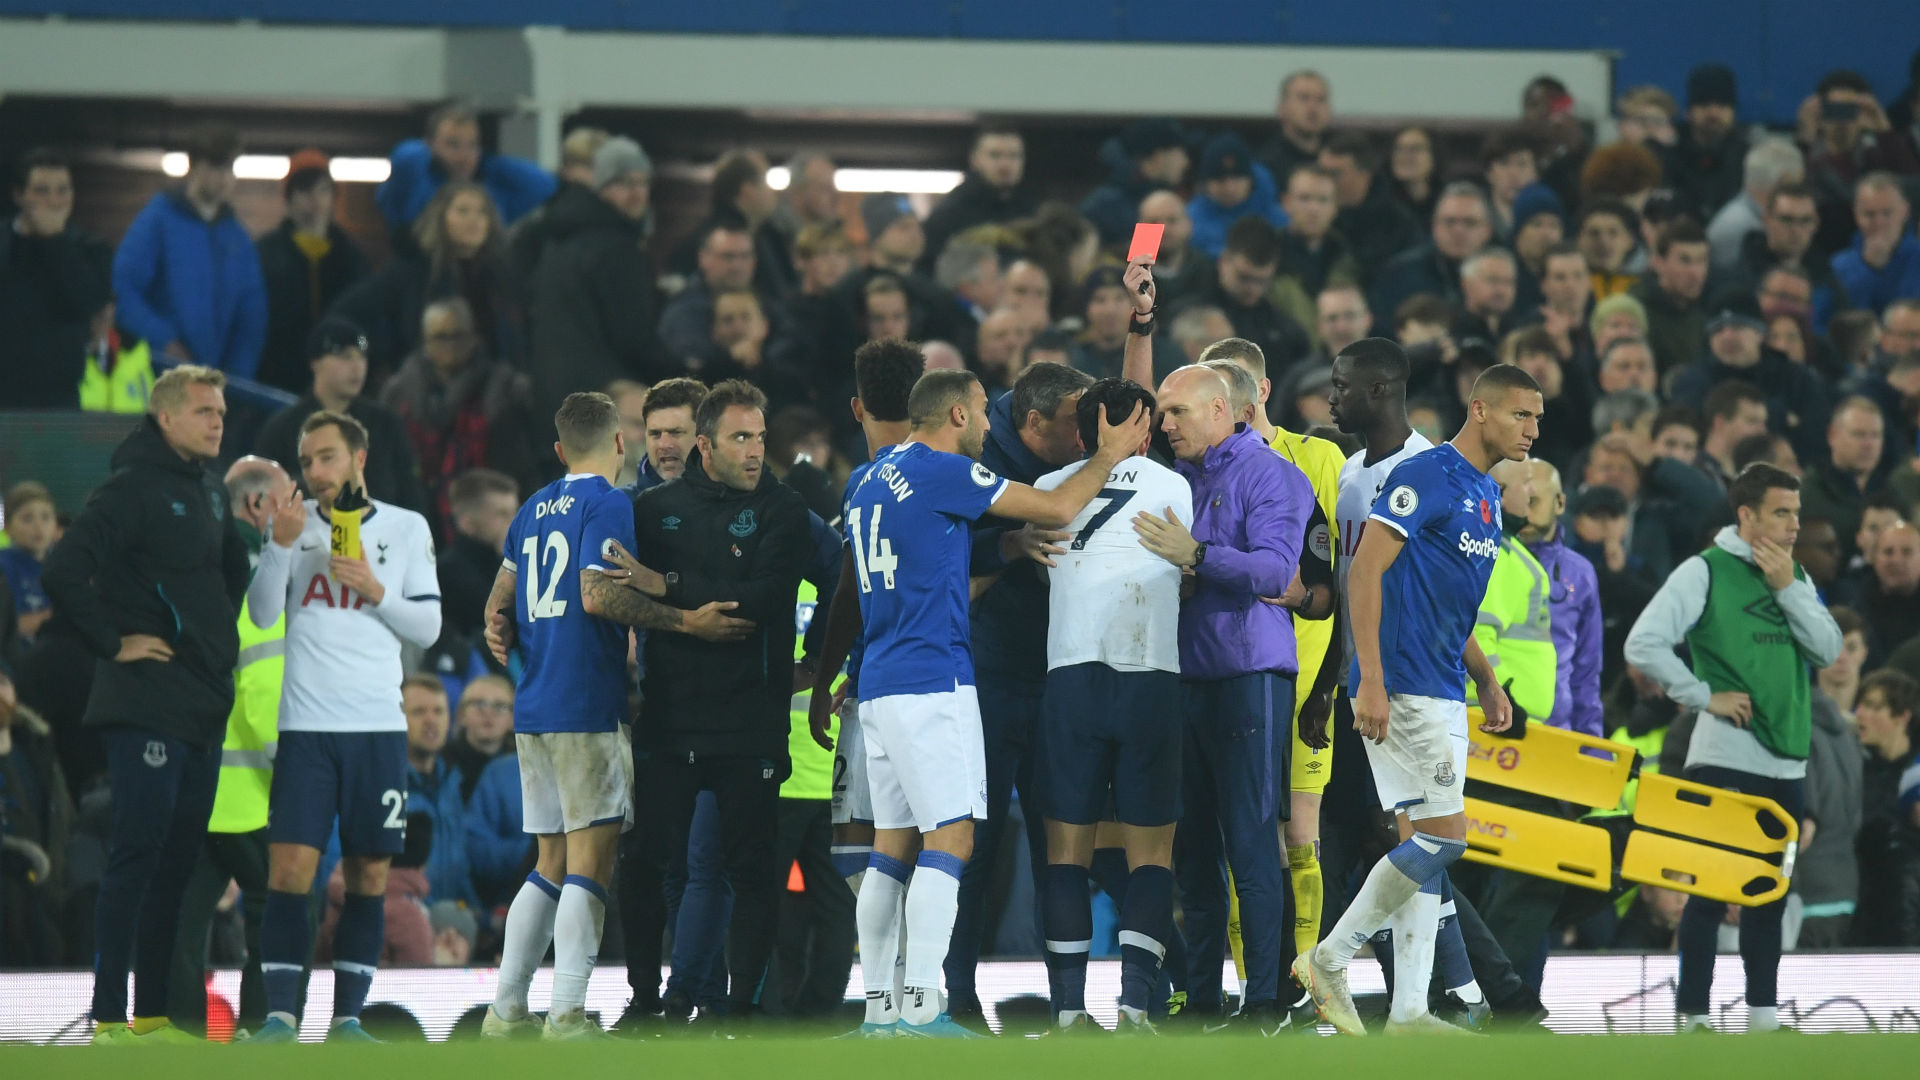 Pochettino expected Son's red card to be rescinded